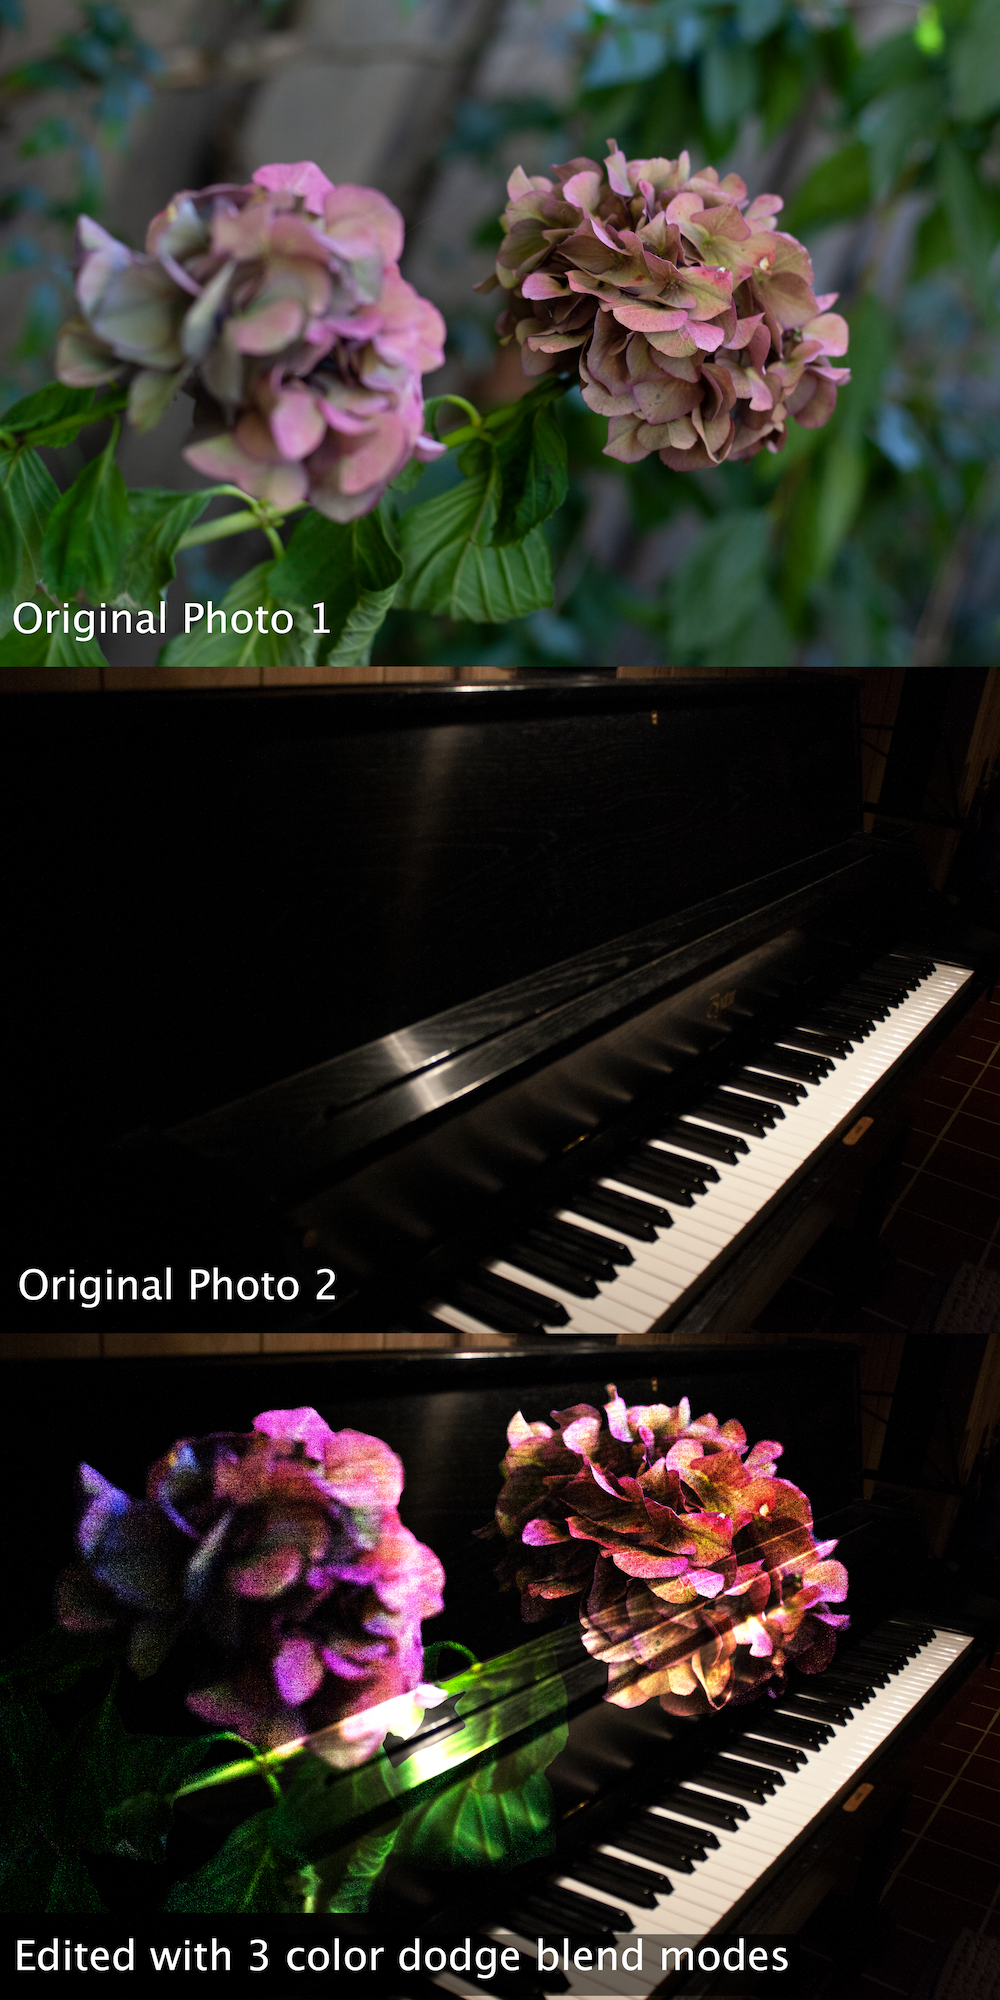 Creative Blend Modes: Piano + Flowers